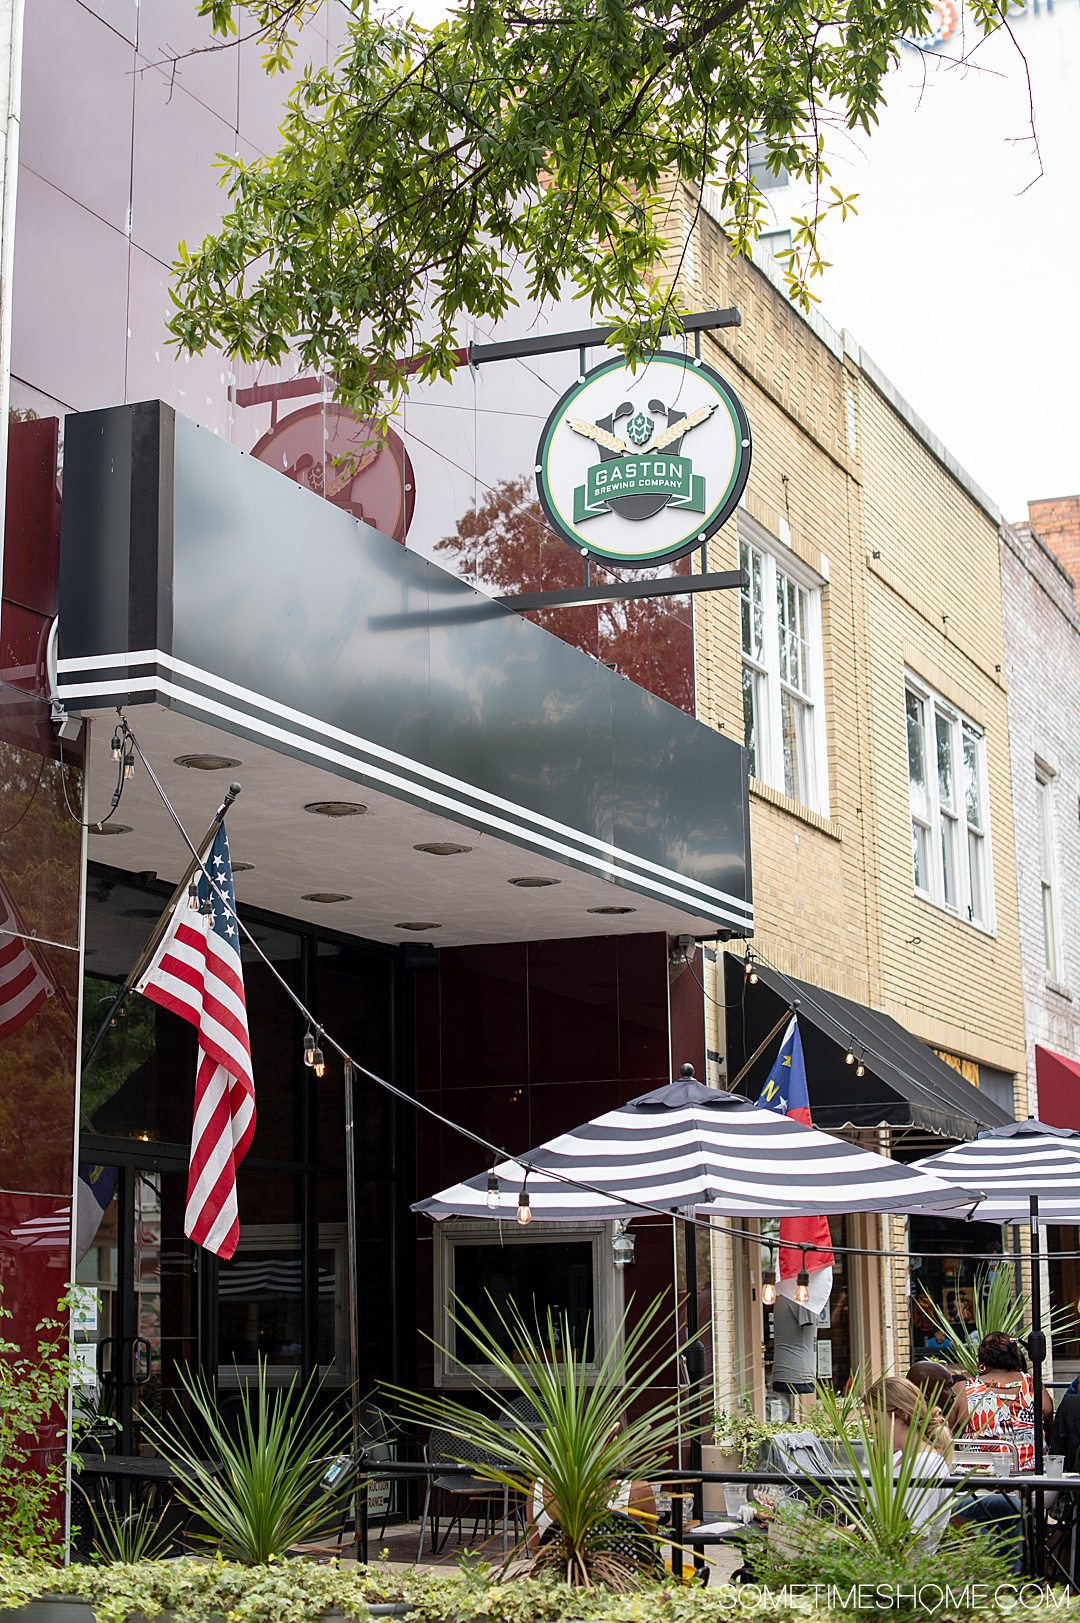 The facade of Gaston Brewing Co. in downtown Fayetteville, NC on Hay Street.